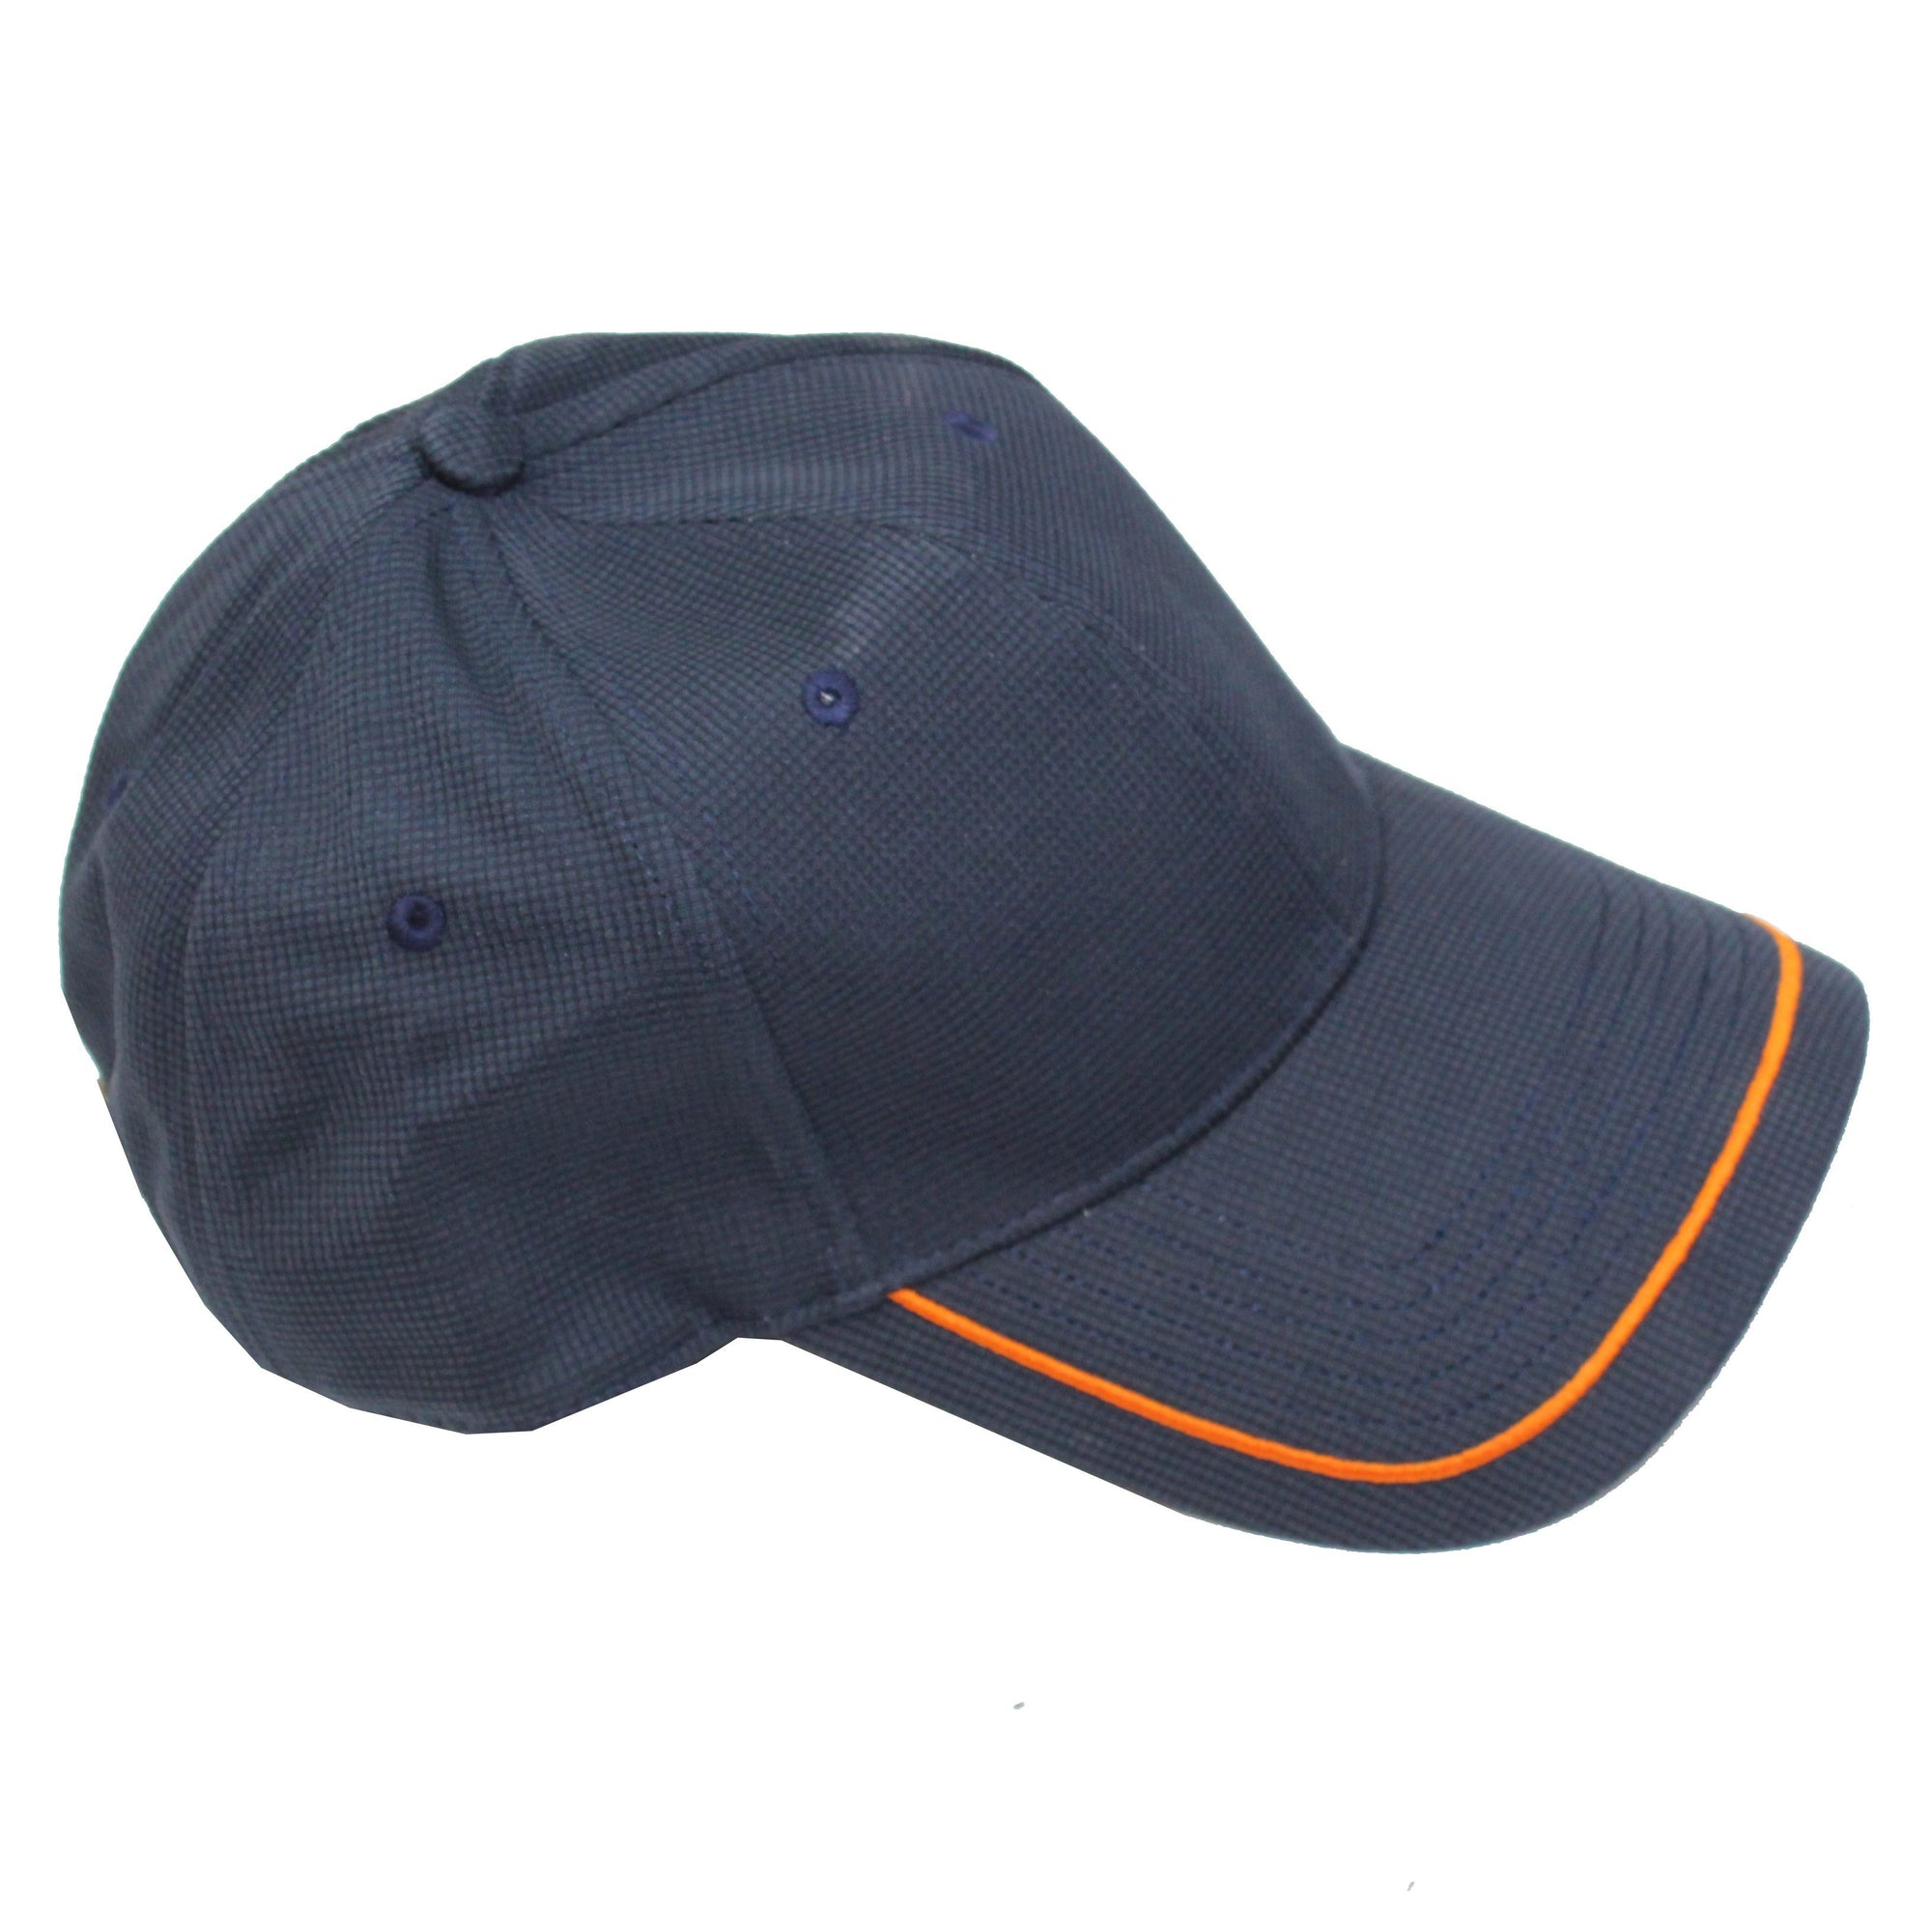 Druids Golf - Contrast Caps (Navy/Orange)